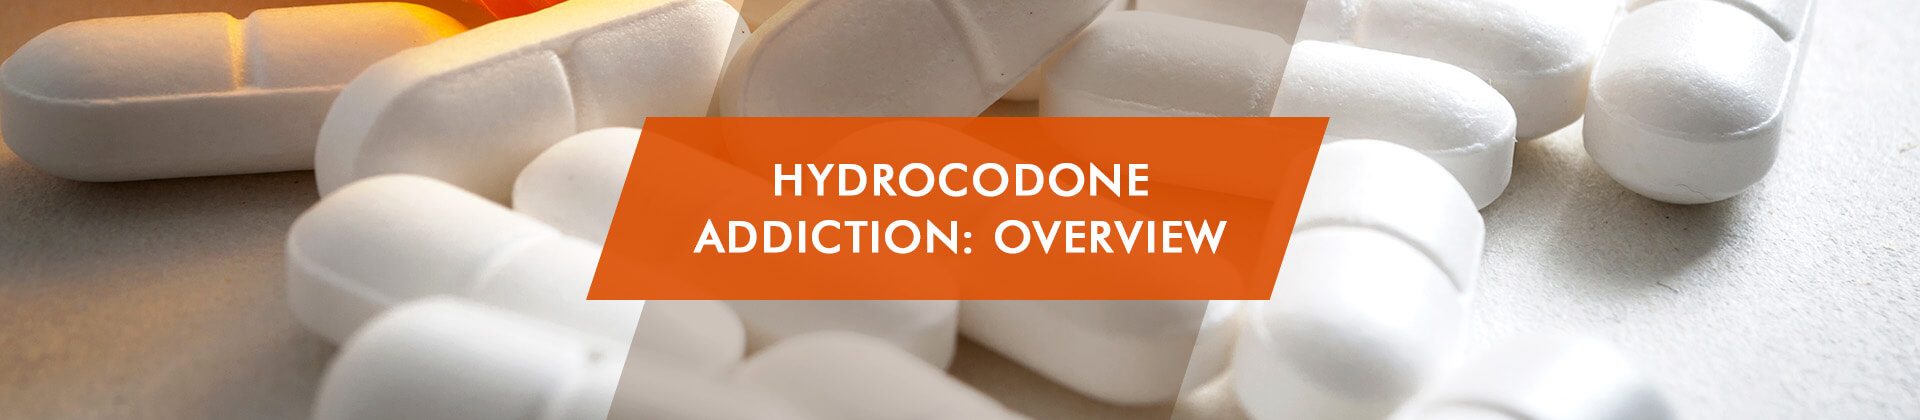 hydrocodone addiction